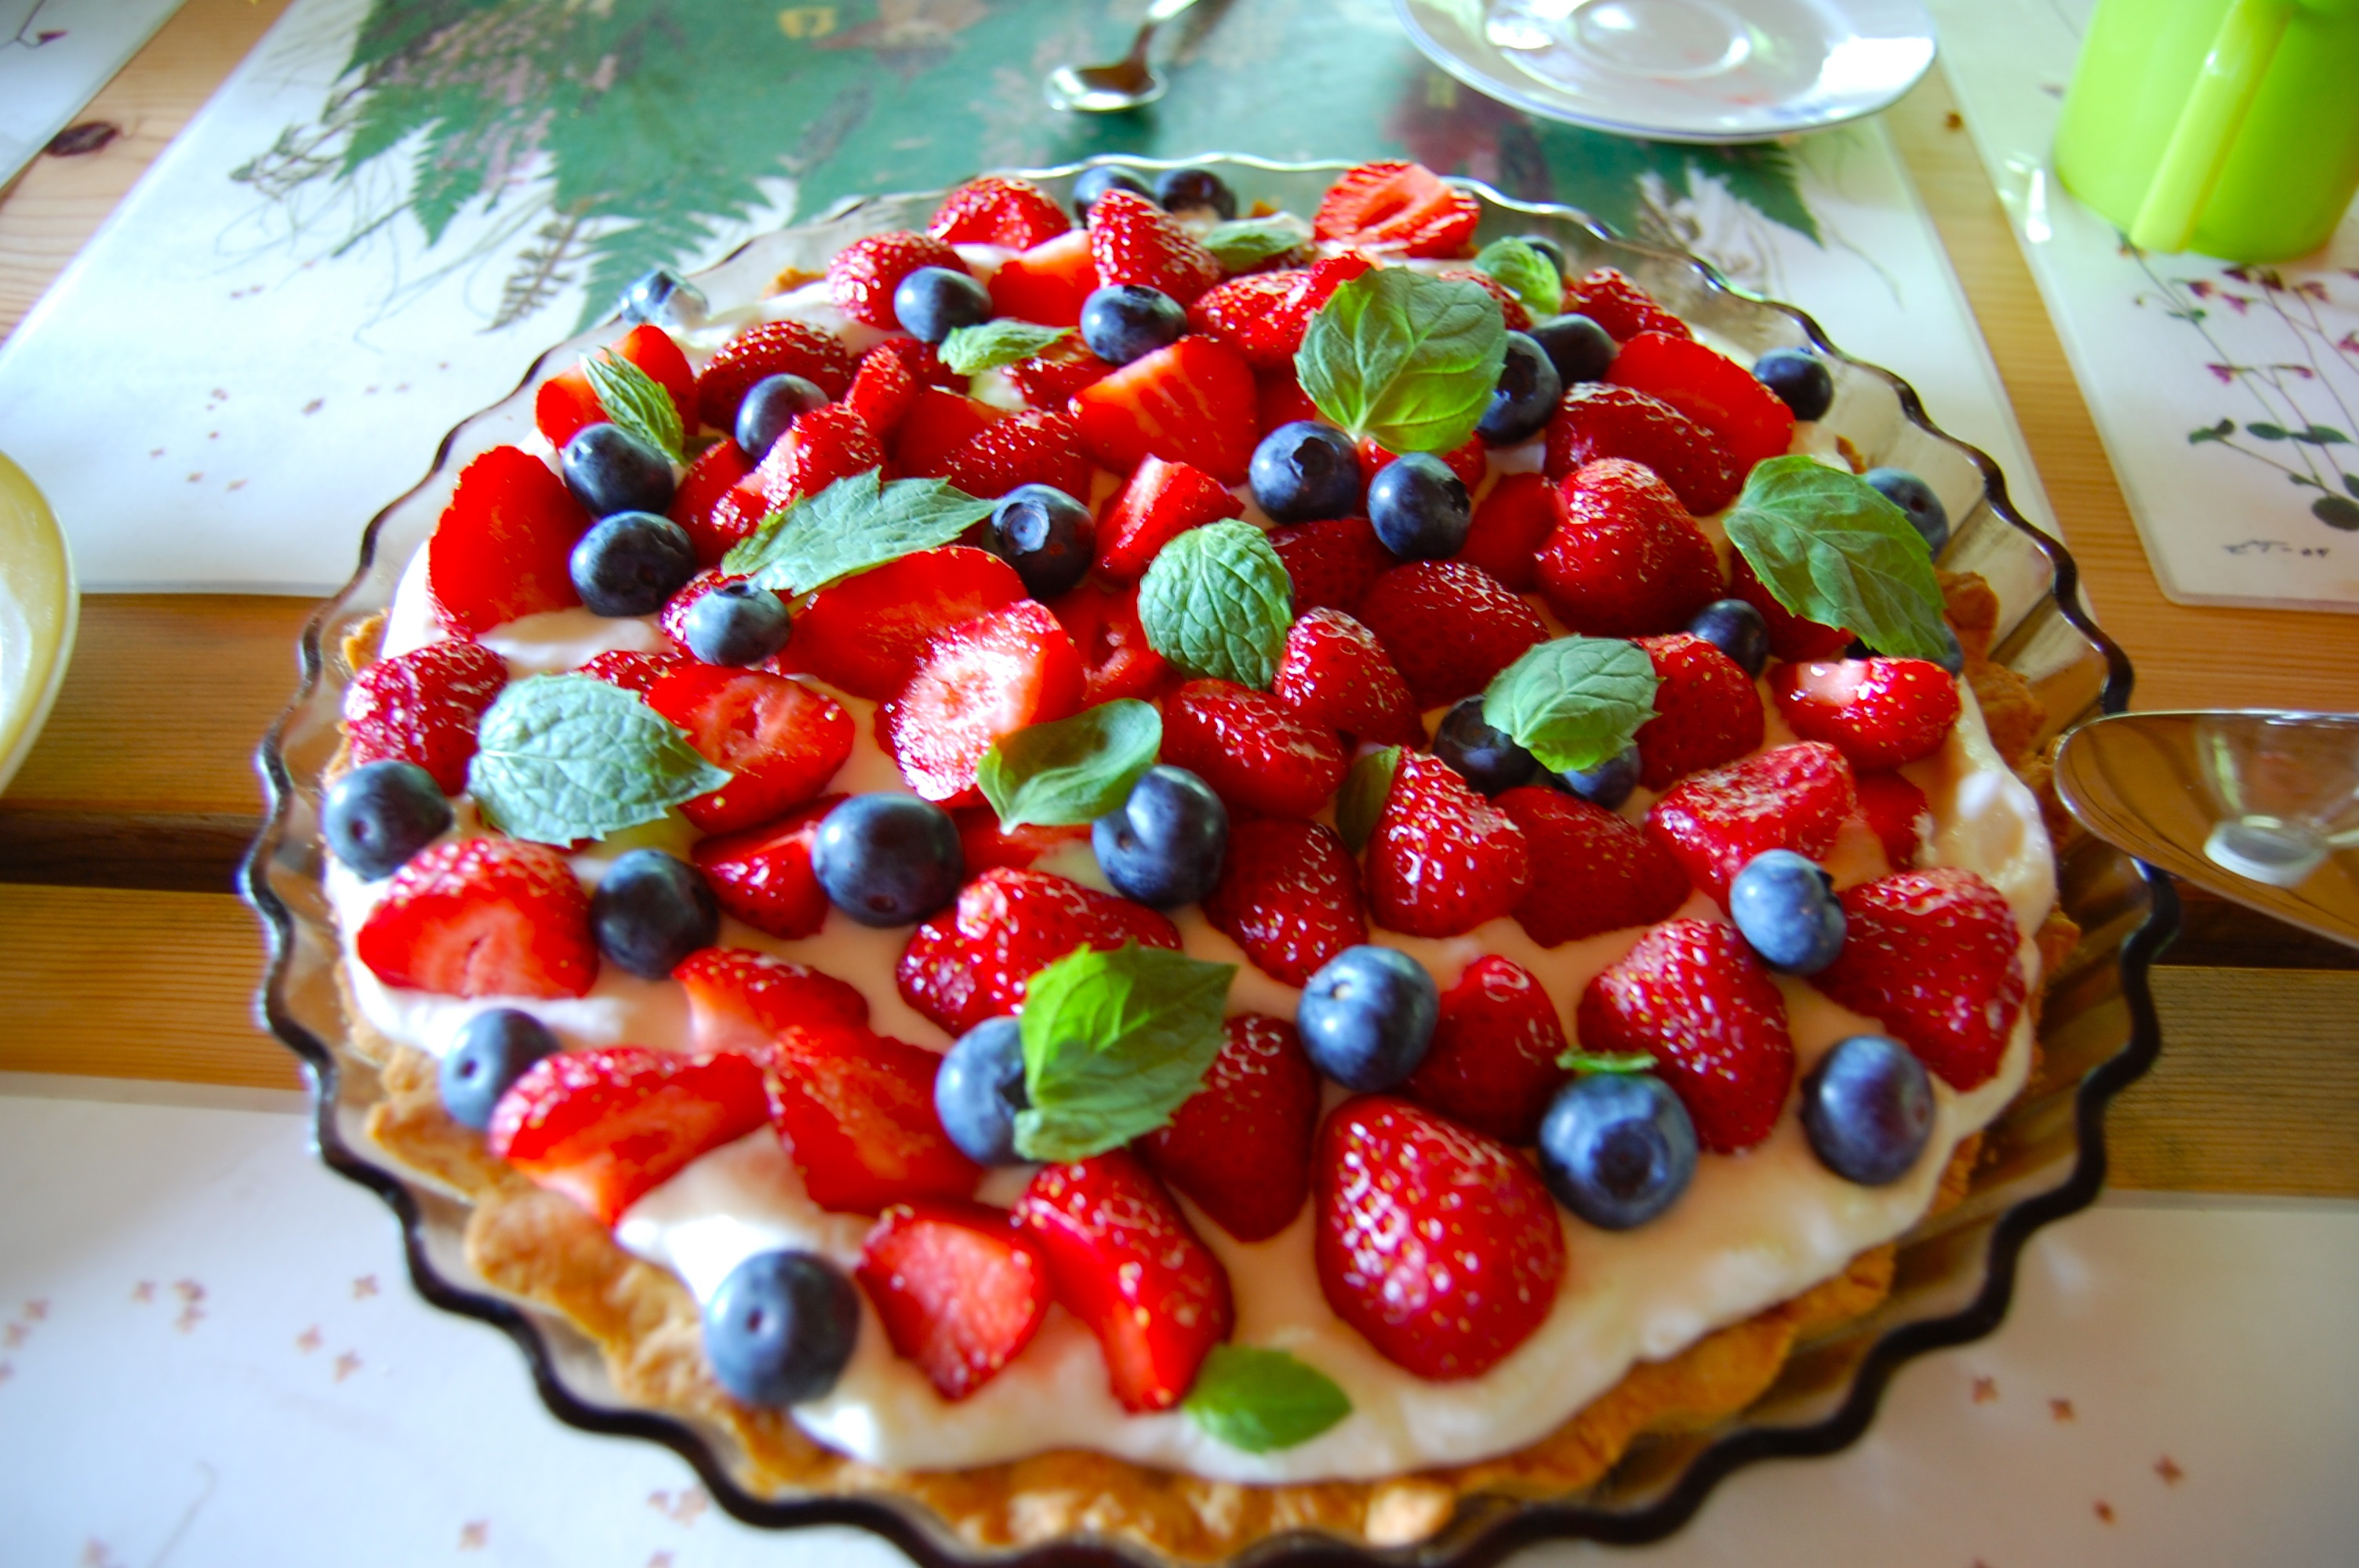 Description Strawberry-blueberry pie, July 2009.jpg